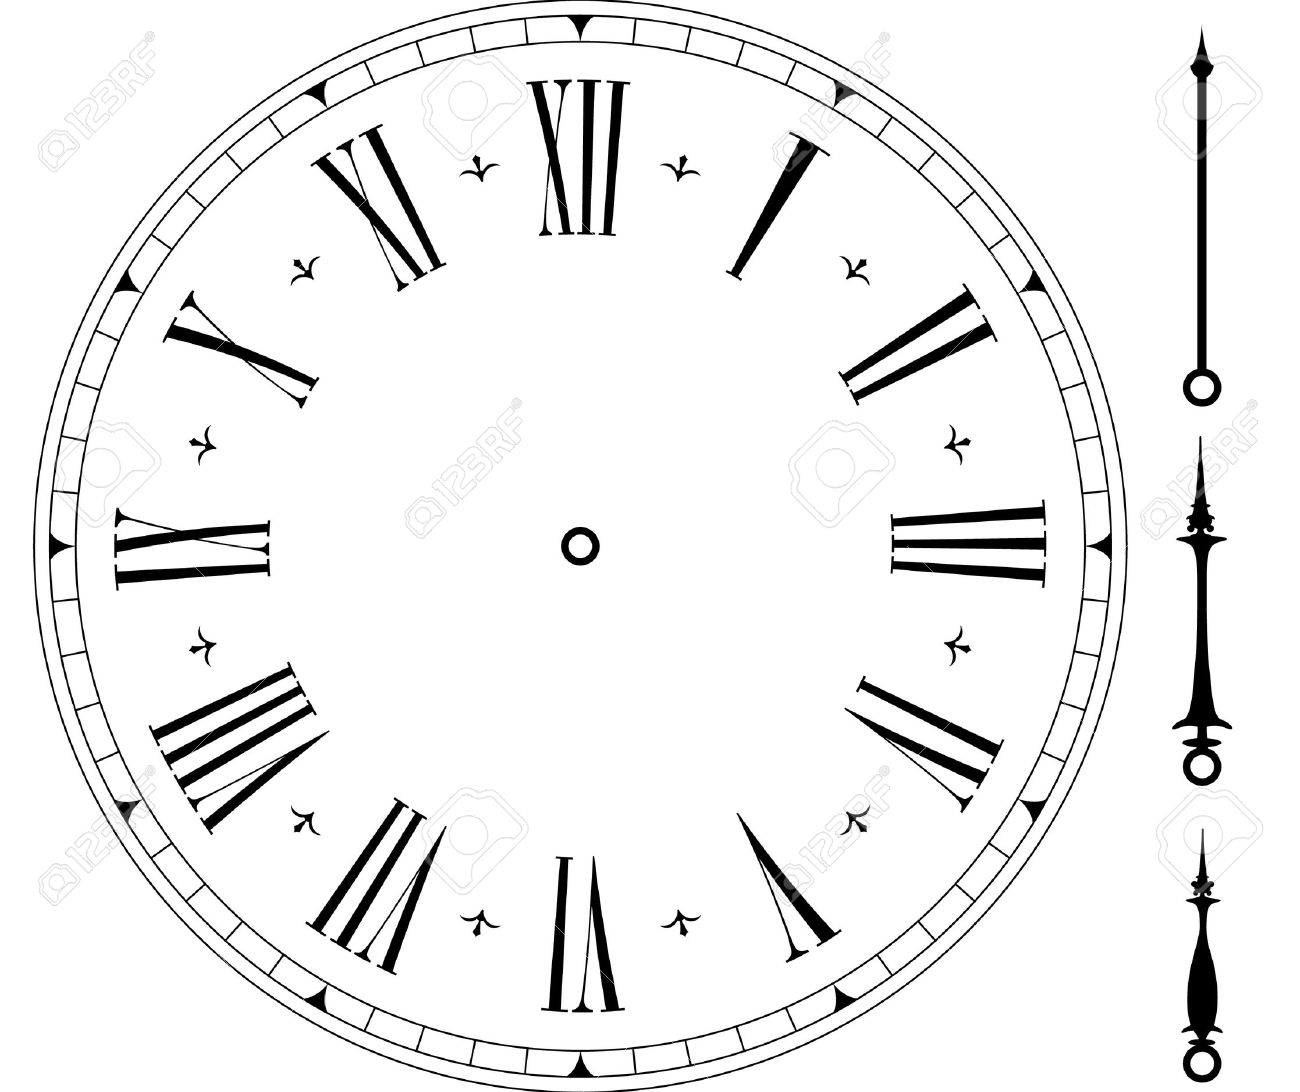 Simple Sentences Worksheets For Kindergarten Pdf Clock Face Template  Contegricom Everyday Mathematics Worksheets with Sum Of Angles In A Triangle Worksheet Pdf Clock Templates Clip Art Library Free Printables Kindergarten Worksheets Excel